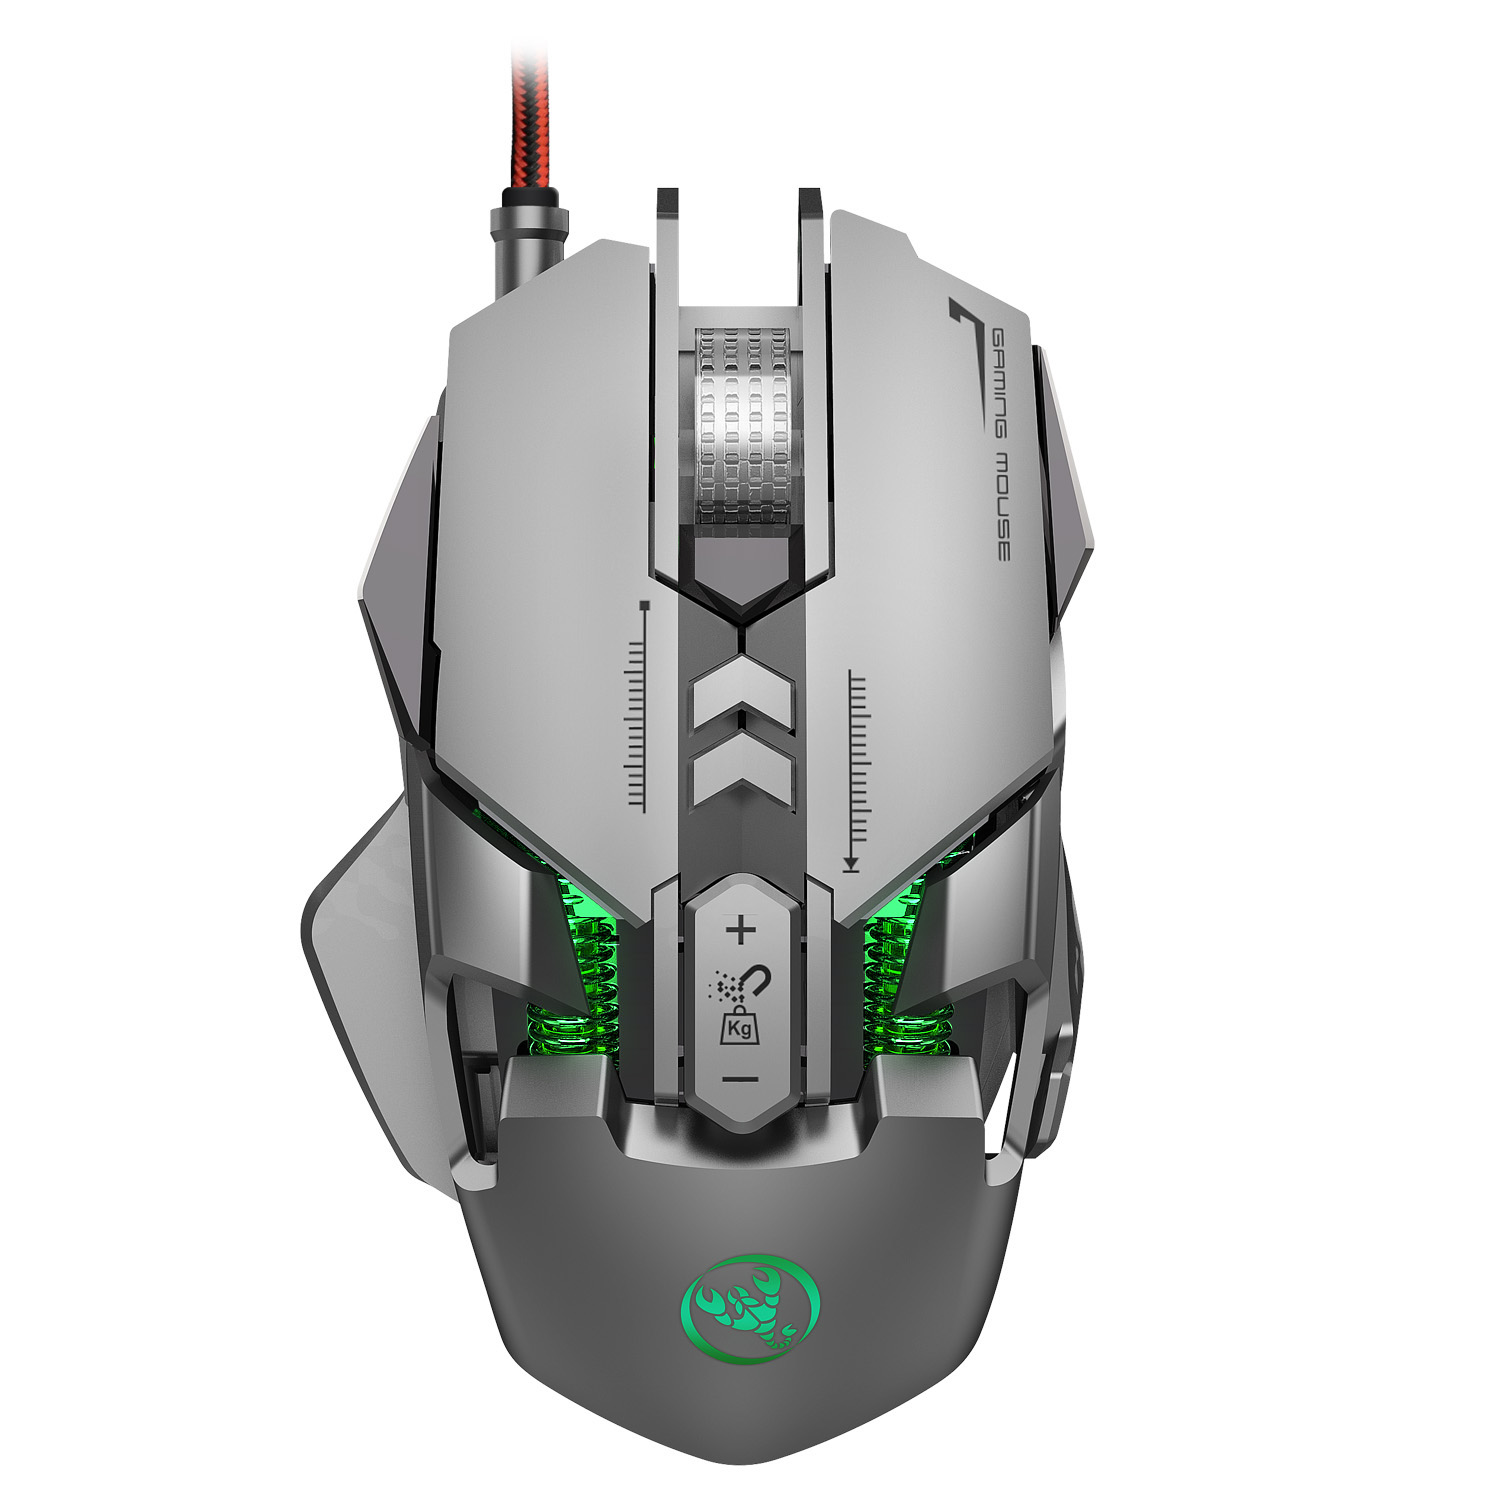 J800 Gaming Mouse Mechanical Macro Definition USB Plug and Play Wired Mouse 7 Buttons Up to 6400 DPI RGB Backlight for PC Laptop Silver grey